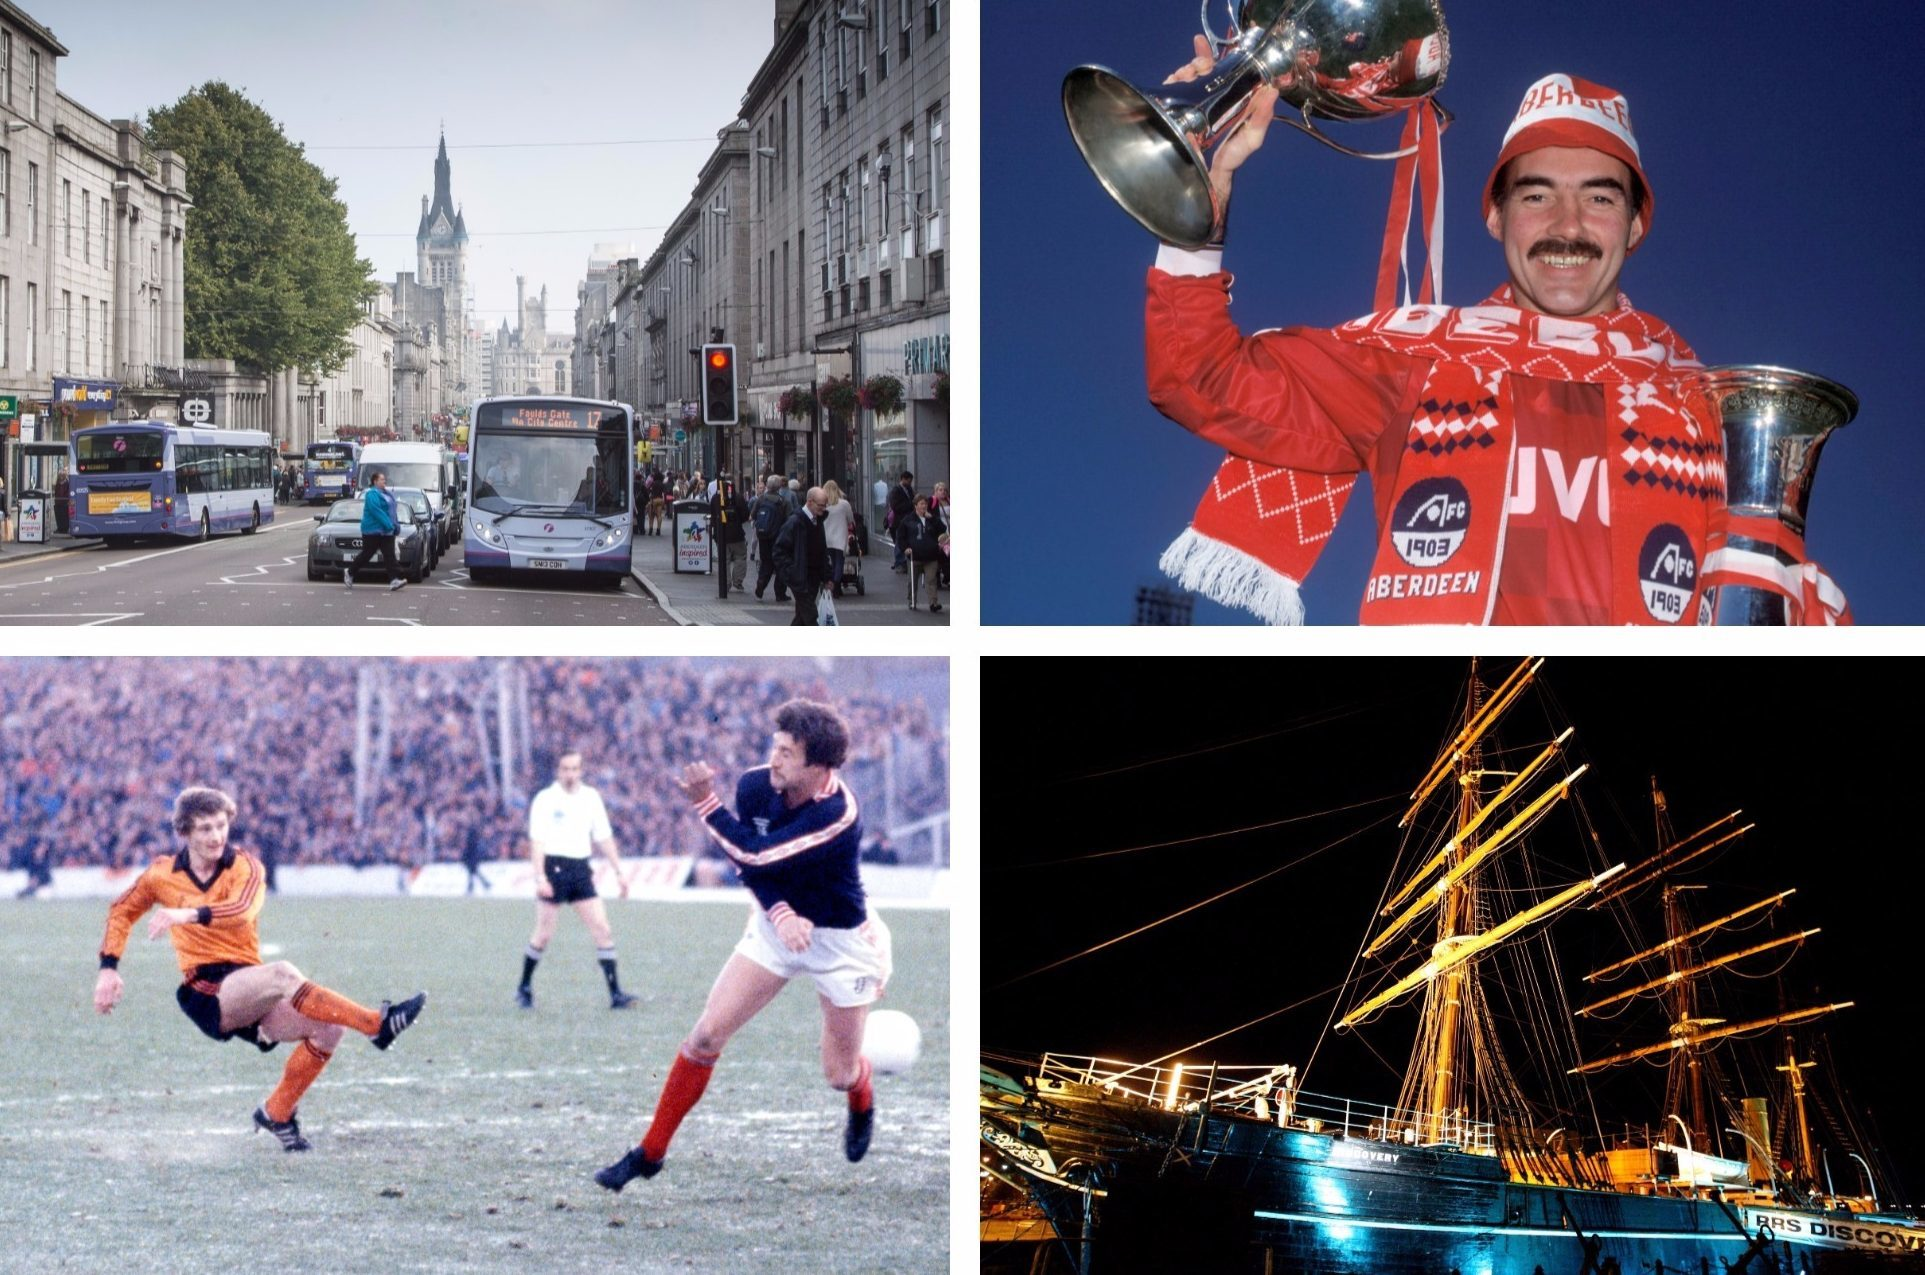 Union Street, Willie Miller, a Dundee Derby in days gone by and the RRS Discovery.